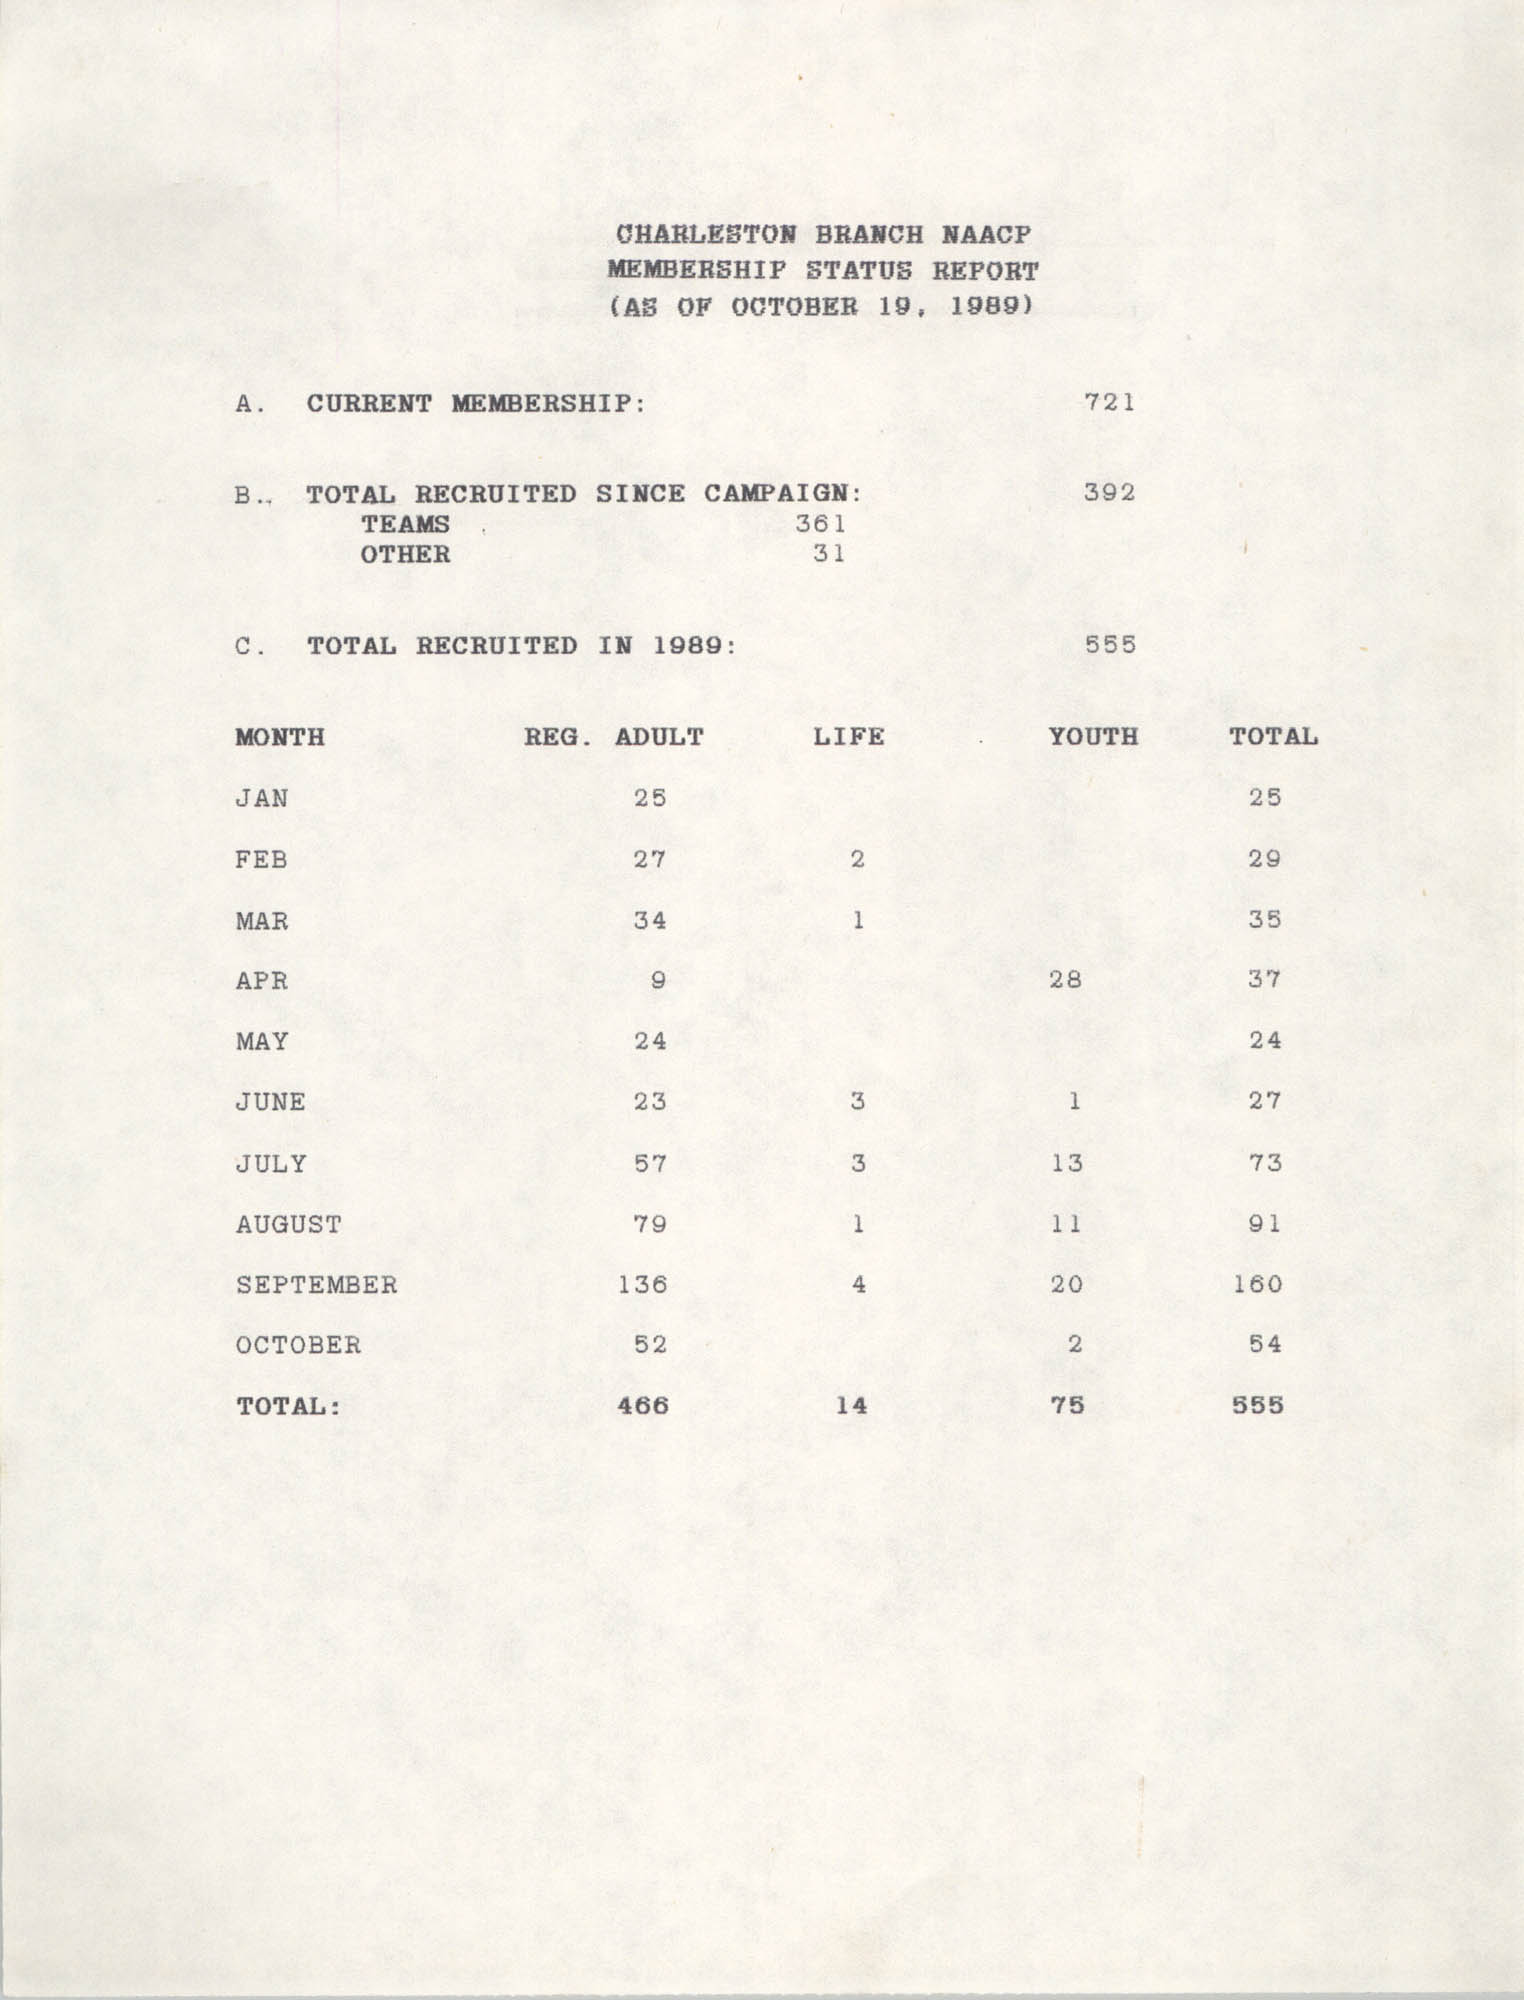 Membership Status Report, National Association for the Advancement of Colored People, October 19, 1989